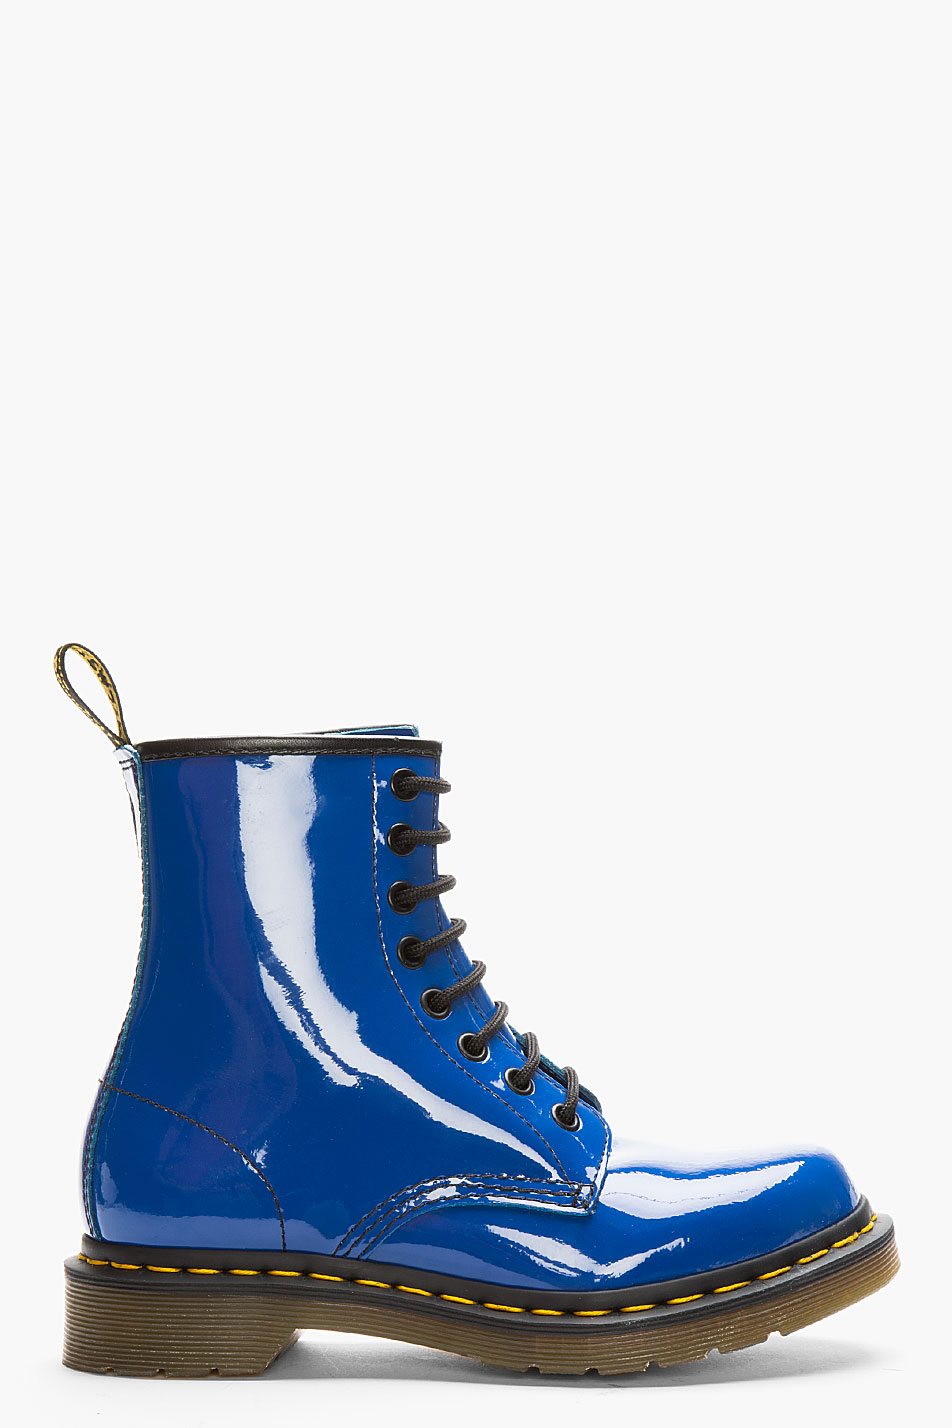 Dr Martens Royal Blue Patent Leather W 8 Eye Boots In